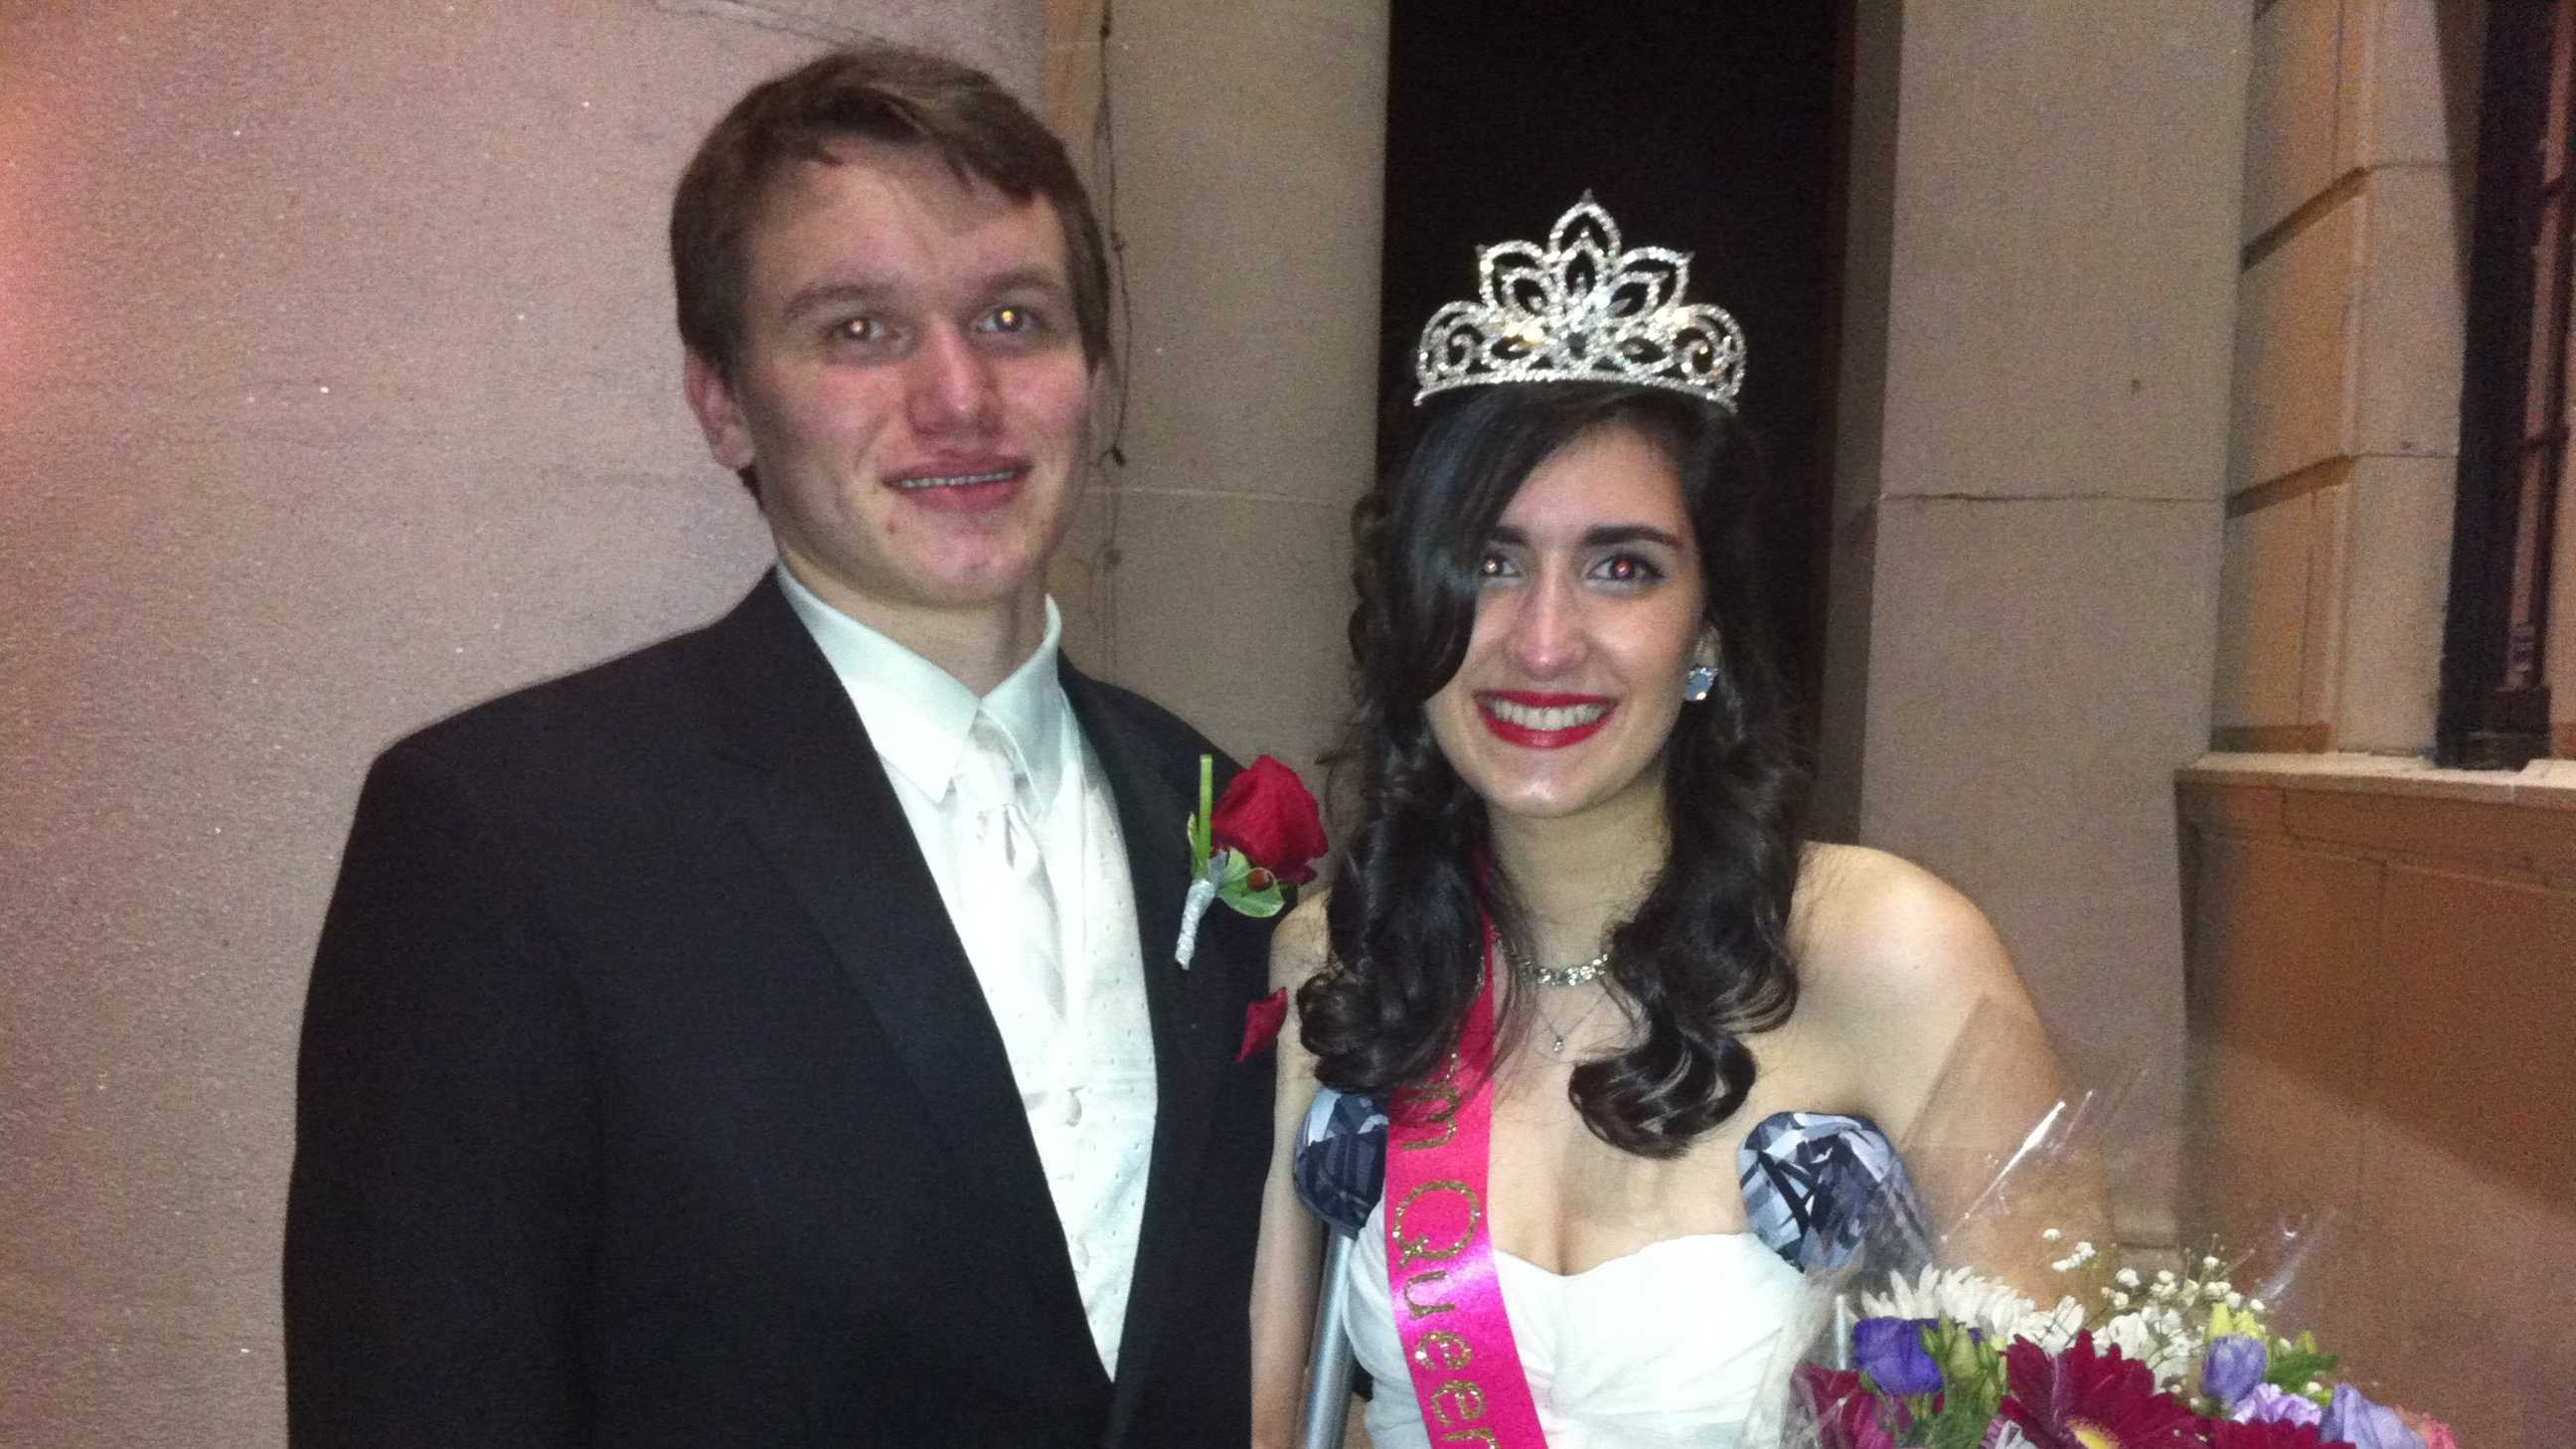 Sydney Corcoran, 18, and her mother, Celeste, were injured in the attacks. Sydney was crowned prom queen at Lowell High School's senior prom.